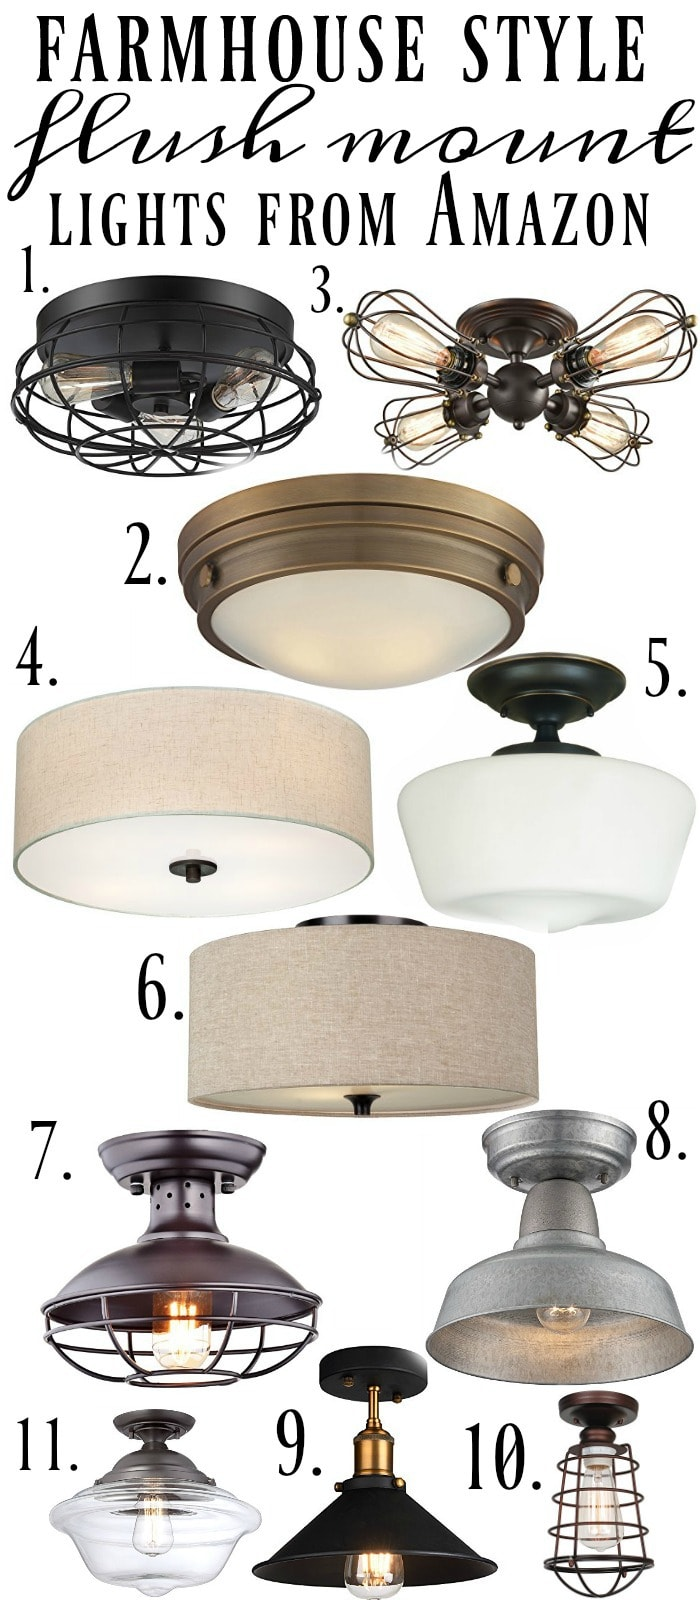 farmhouse flush mount lights liz marie blog 14190 | untitled 49